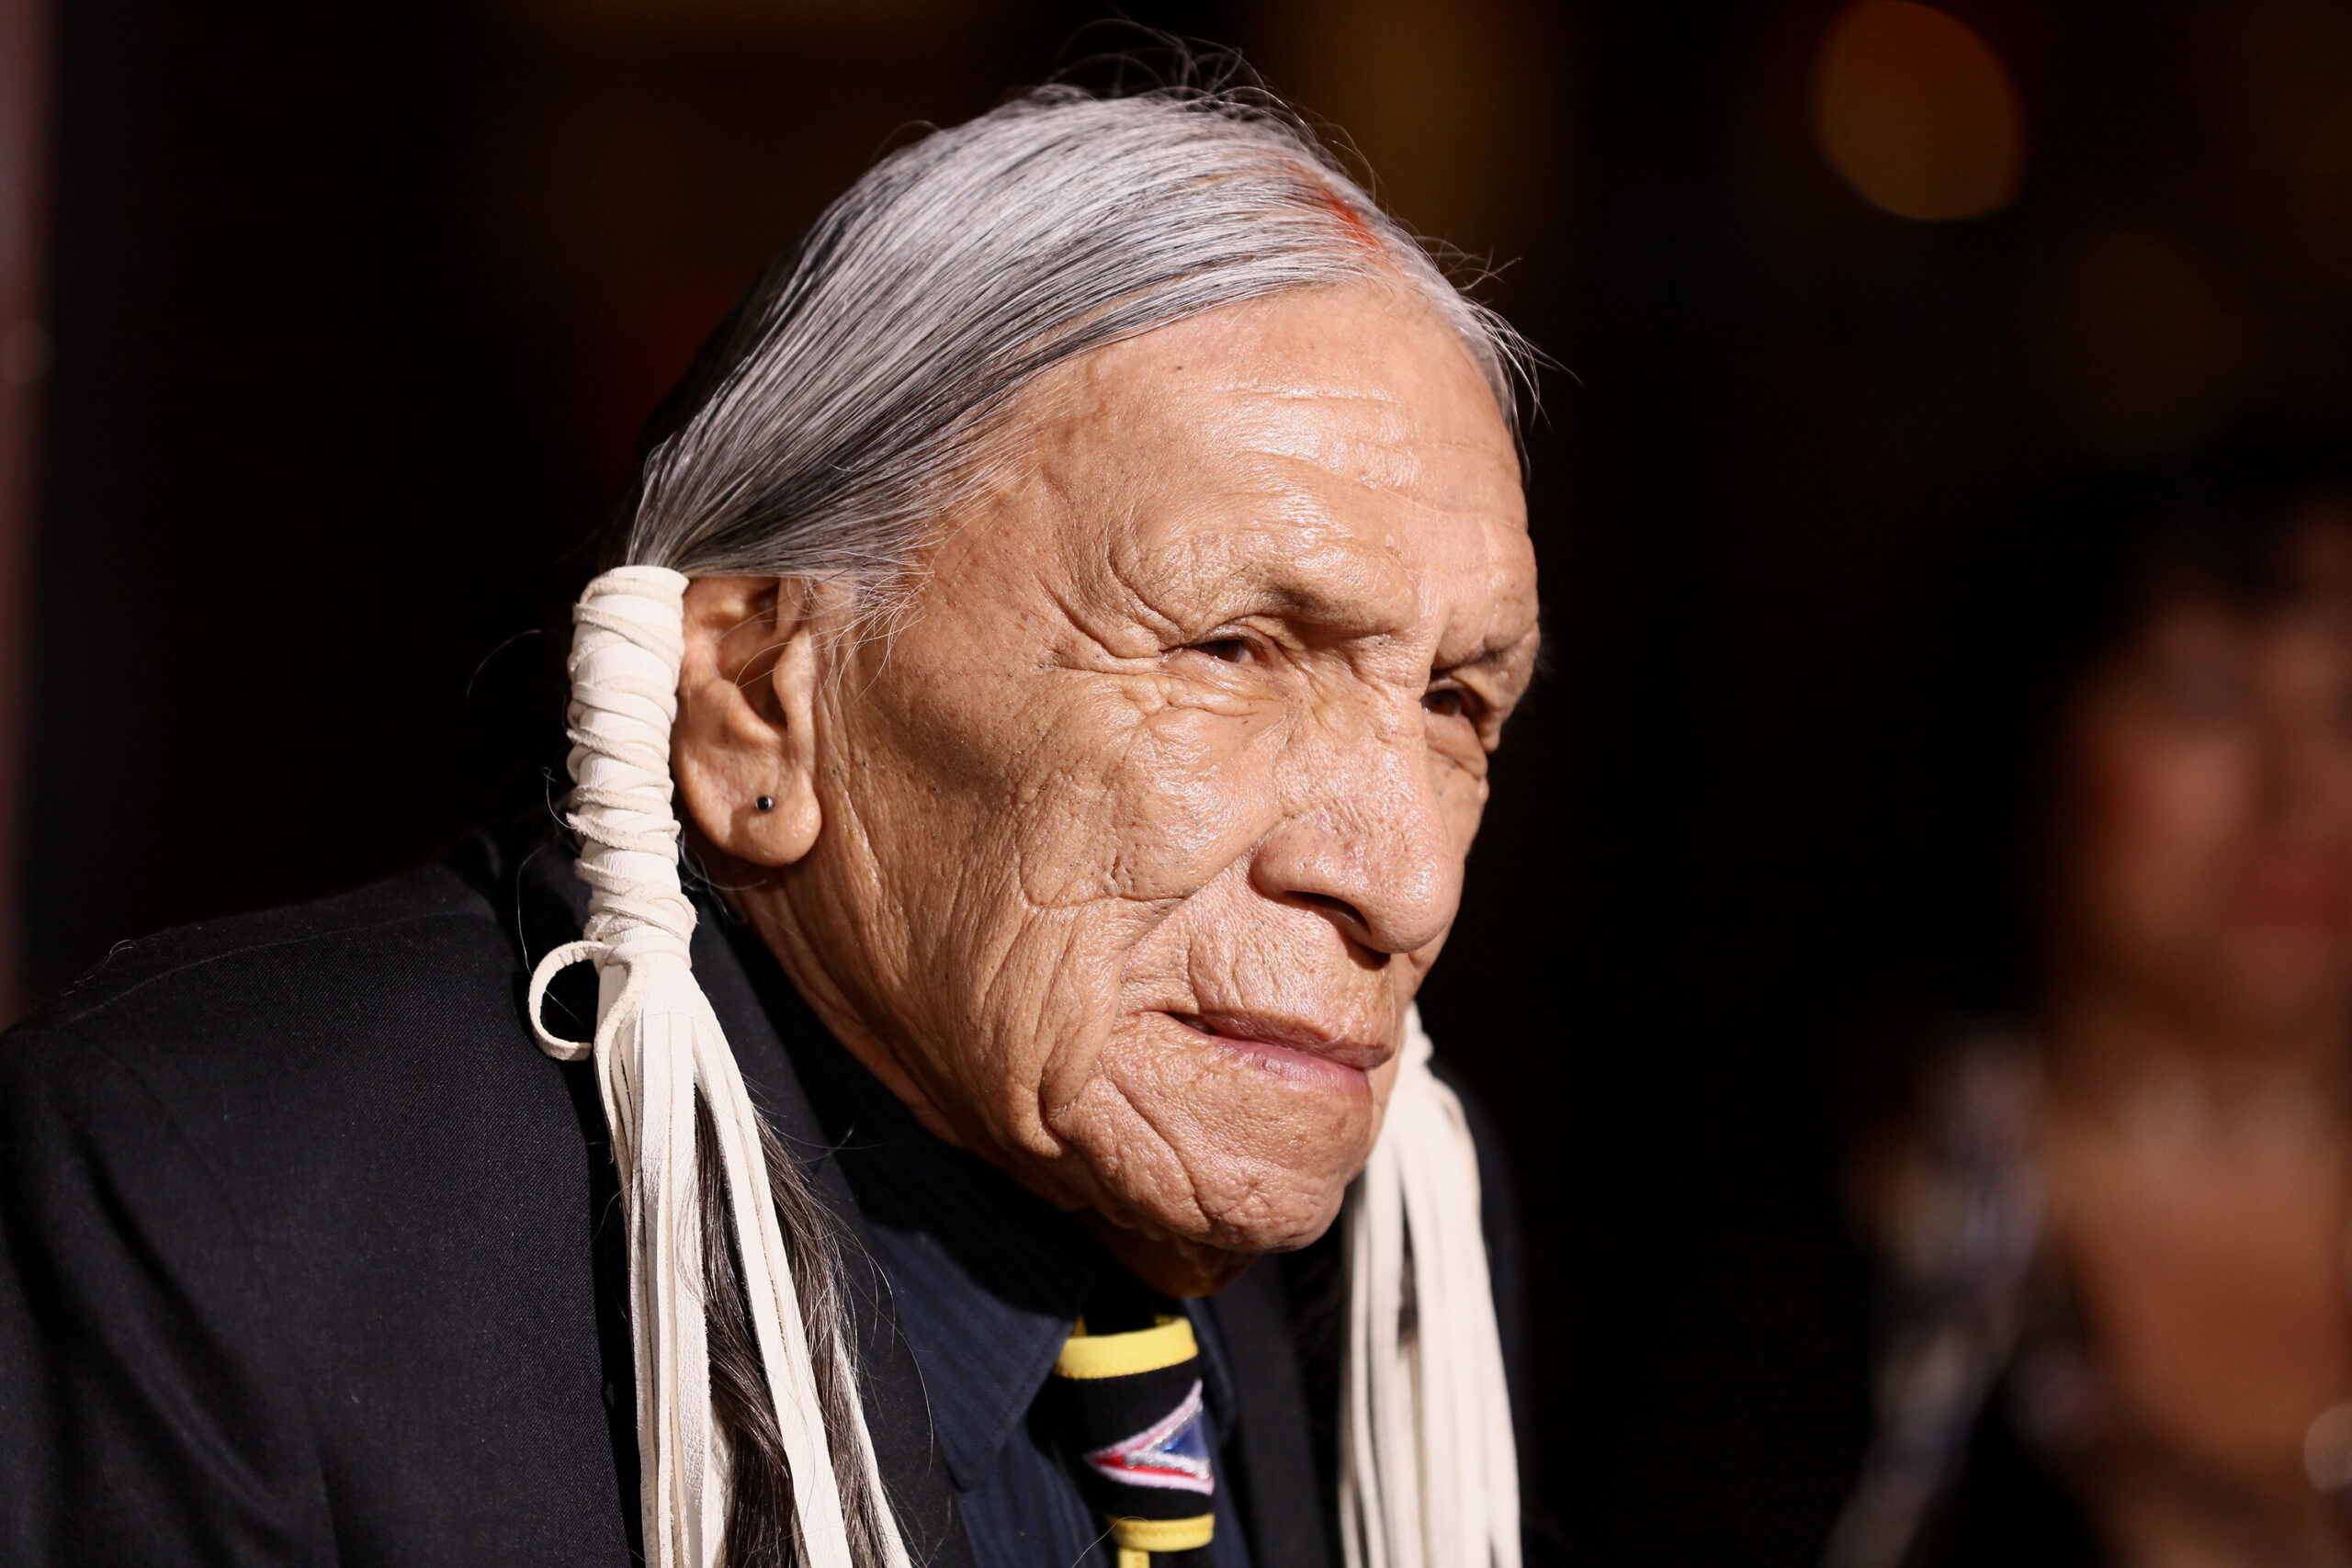 <i>JB Lacroix/WireImage/Getty Images</i><br/>Actor Saginaw Grant